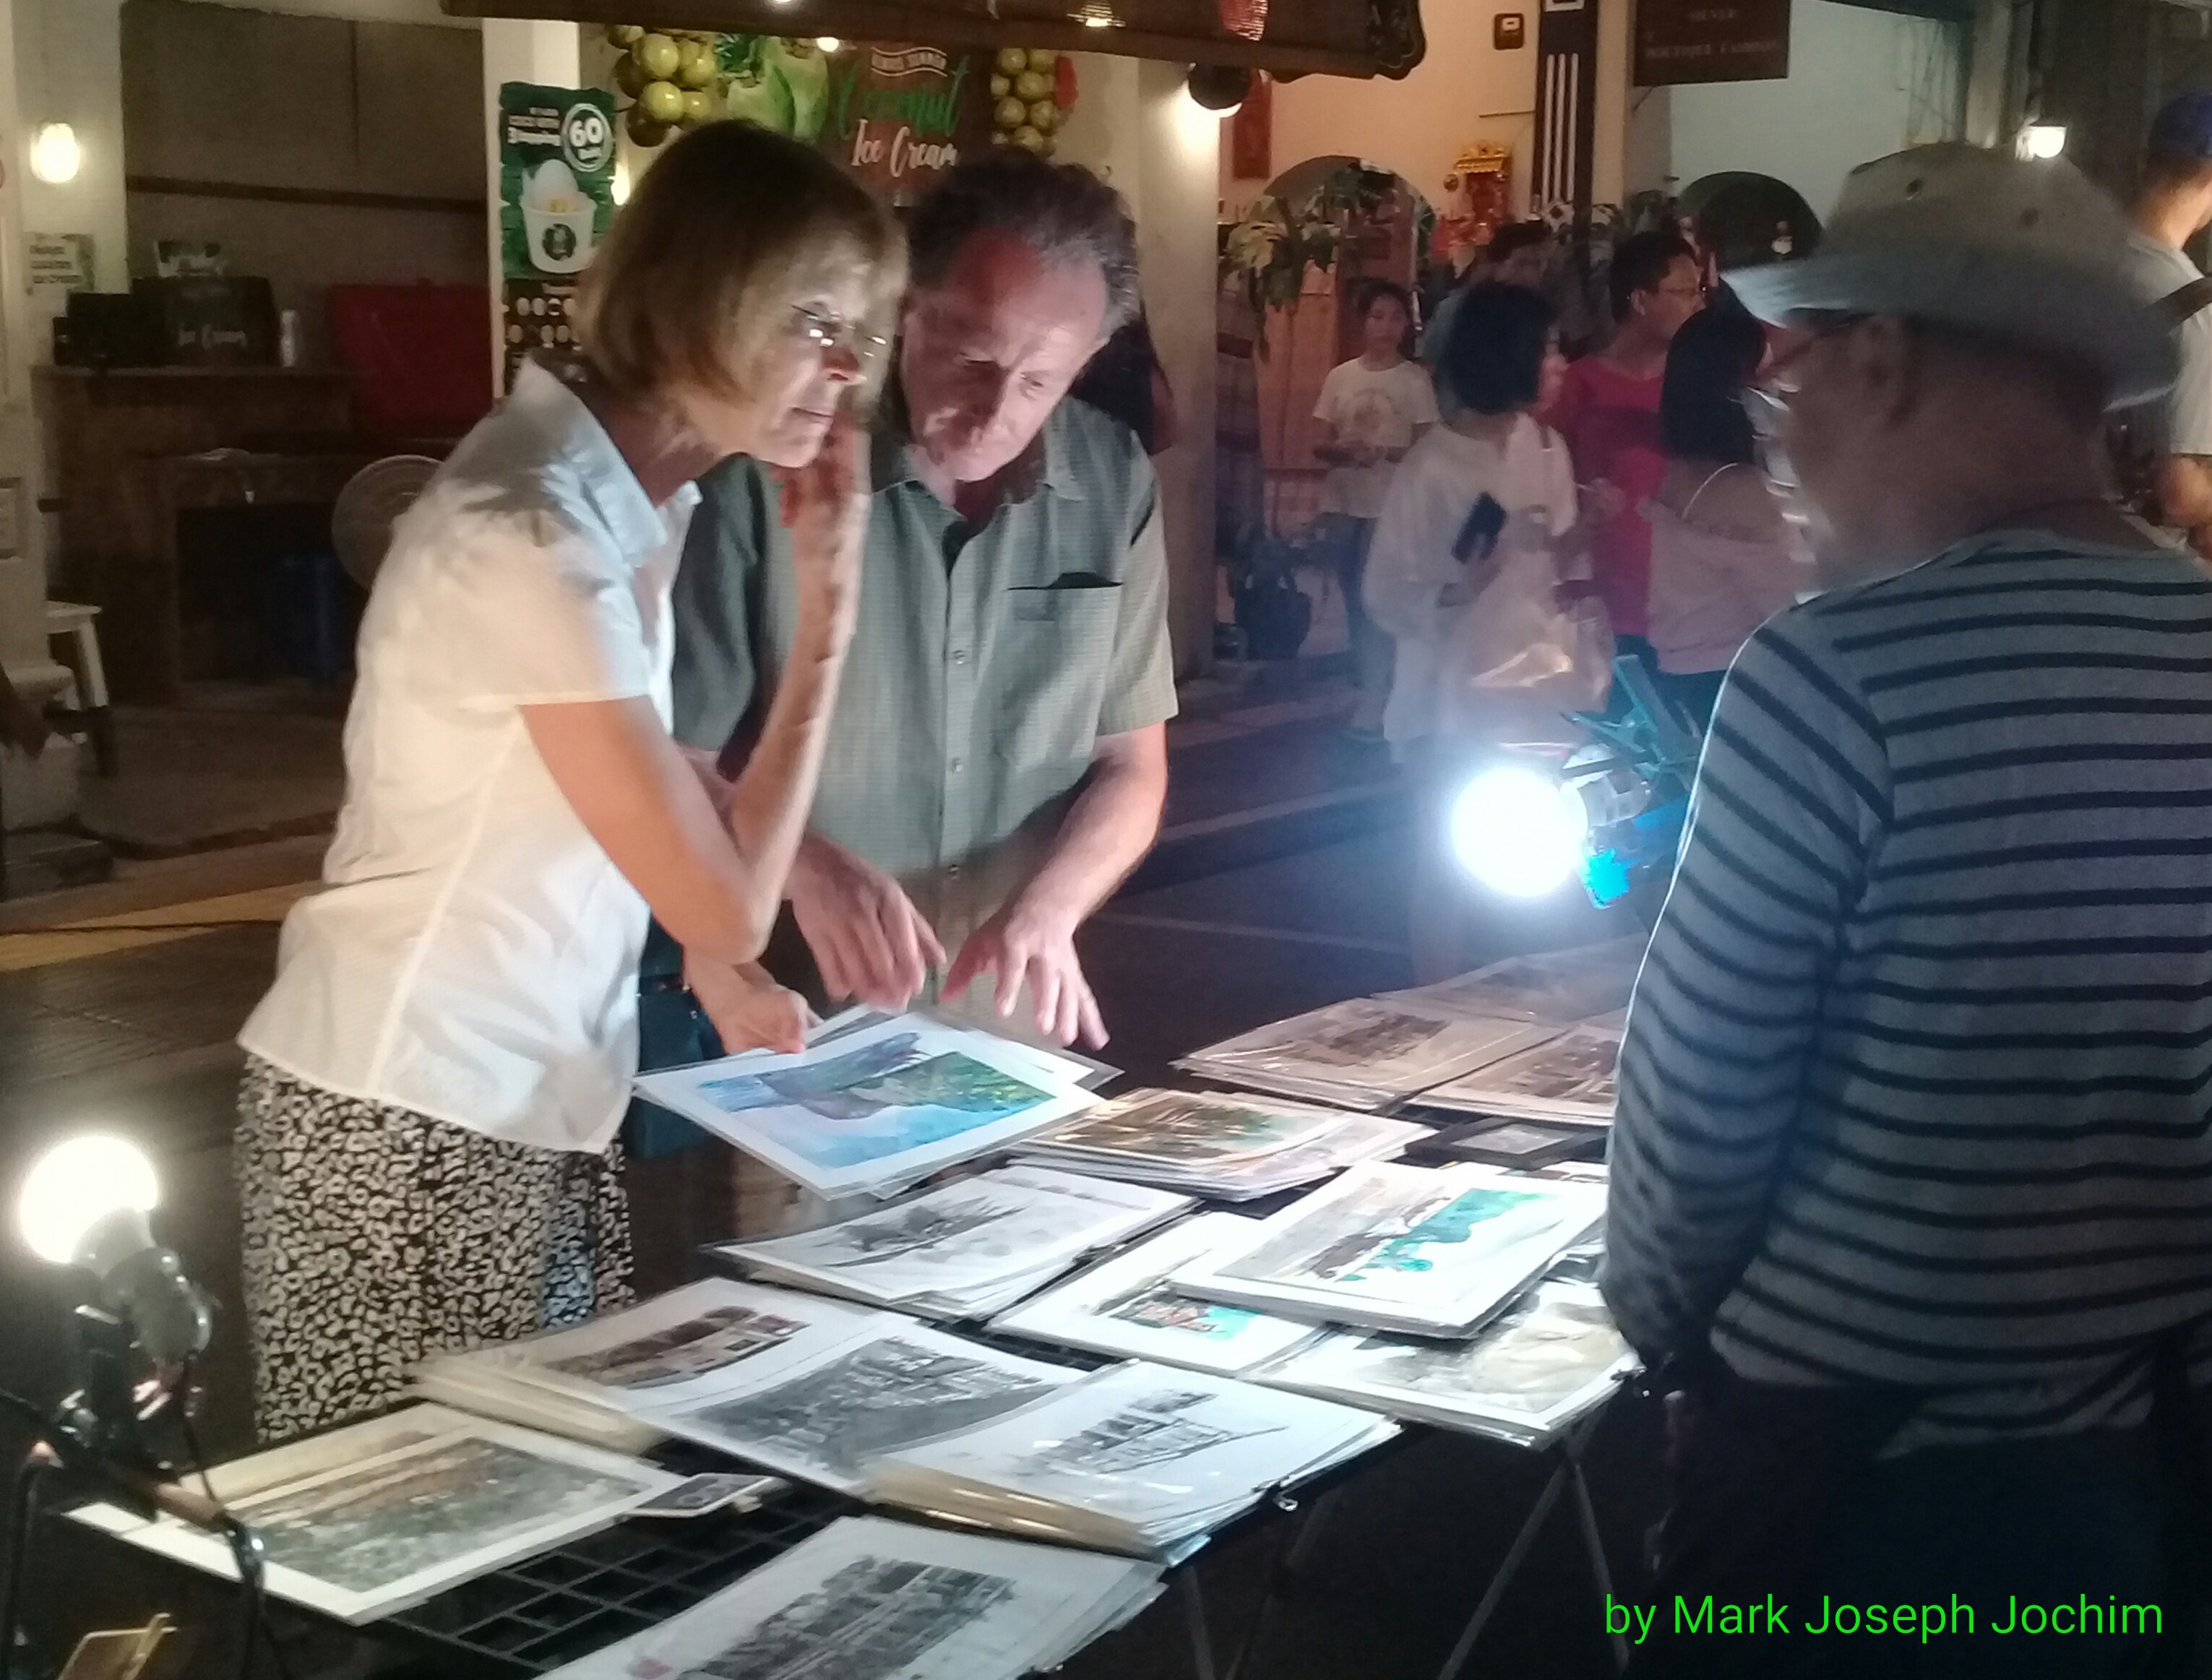 Foreign tourists buying prints at the Sunday night Walking Street known locally as Lard Yai in Phuket Old Town, Thailand. Photo taken on January 20, 2019.